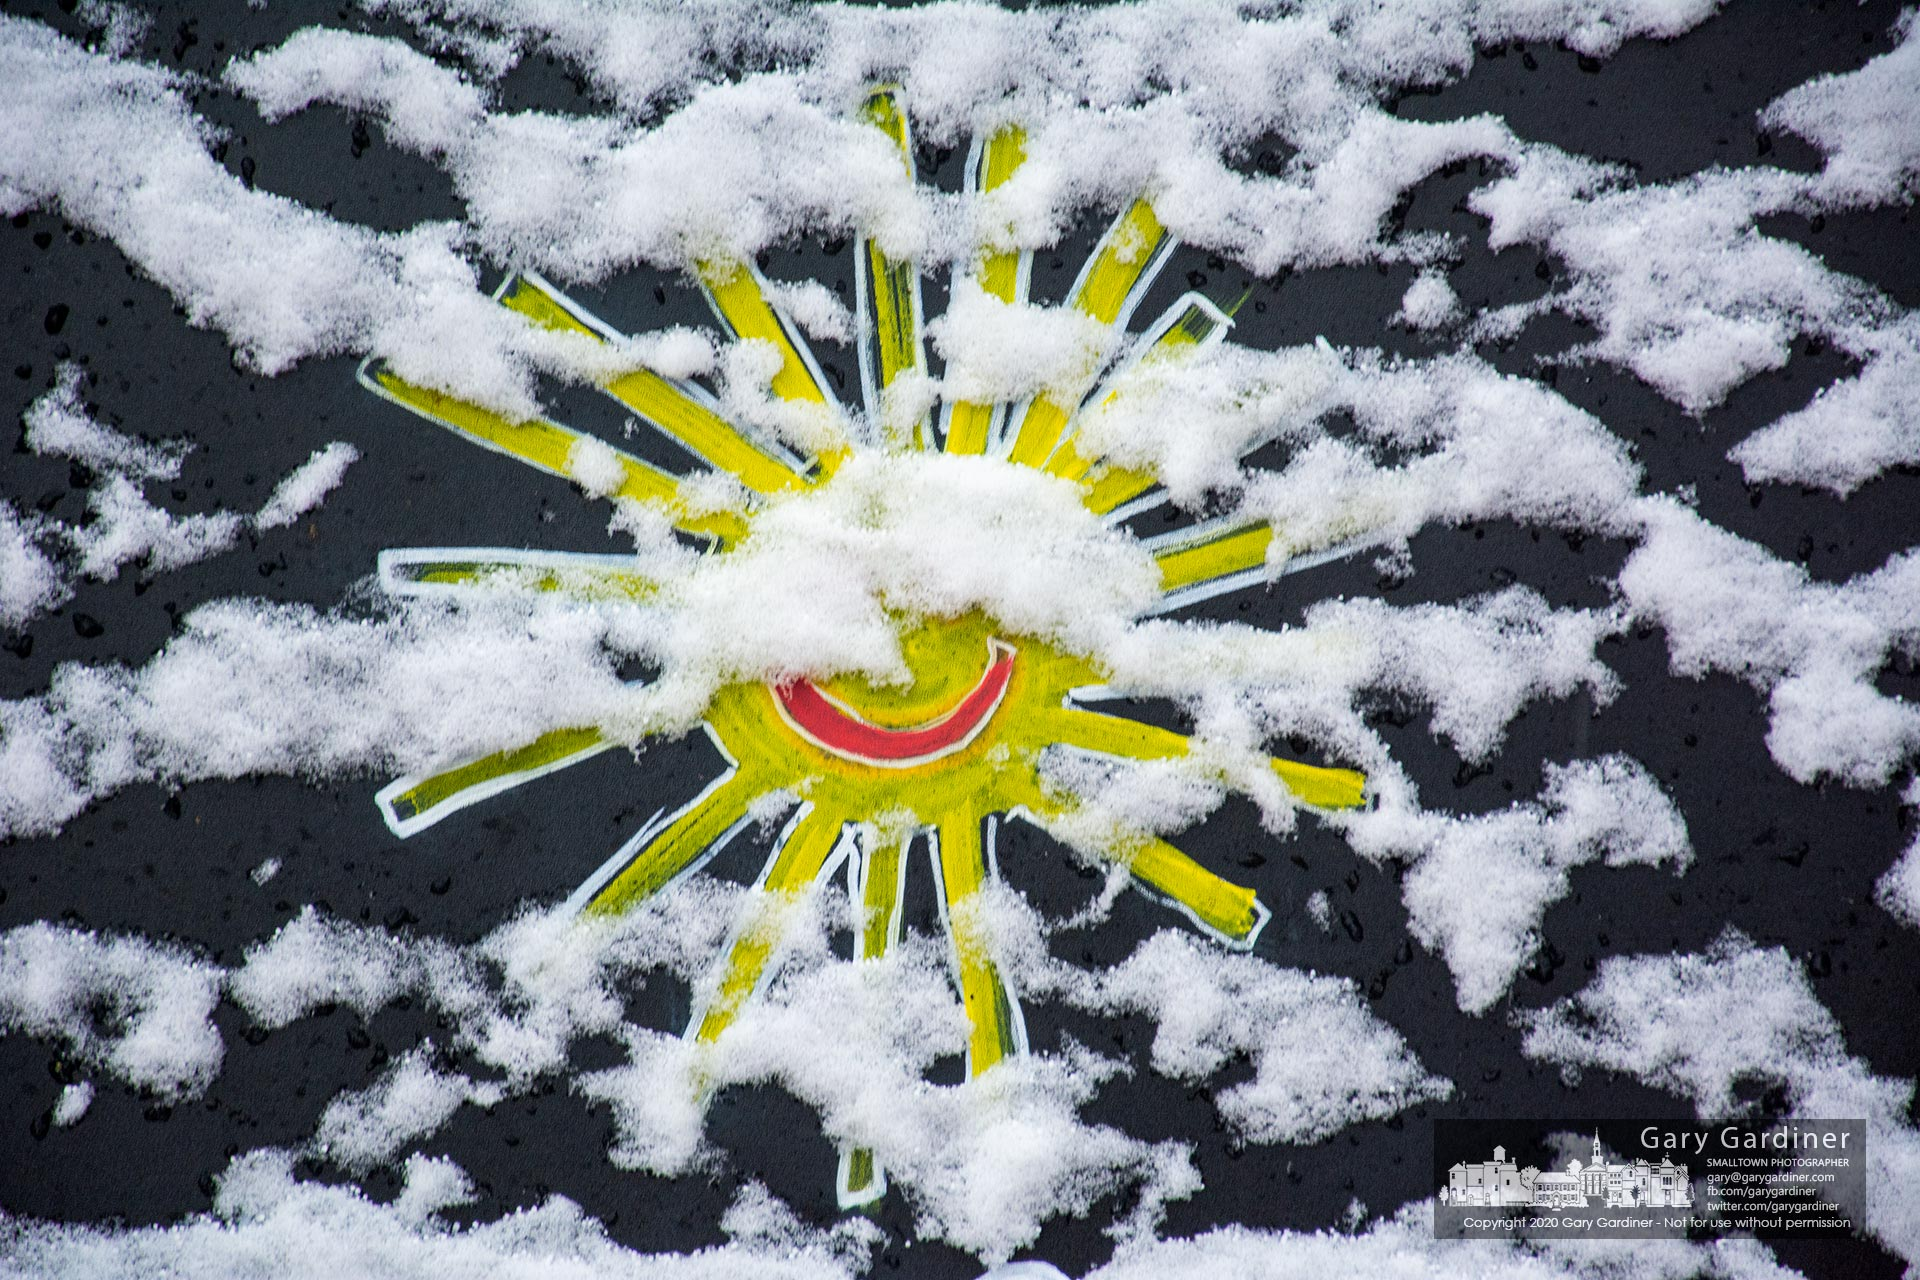 A scattering of snow covers a smiling sun painted on the sandwich board advertising Totadalicious on South State Street after an overnight storm. My Final Photo for Dec. 1, 2020.